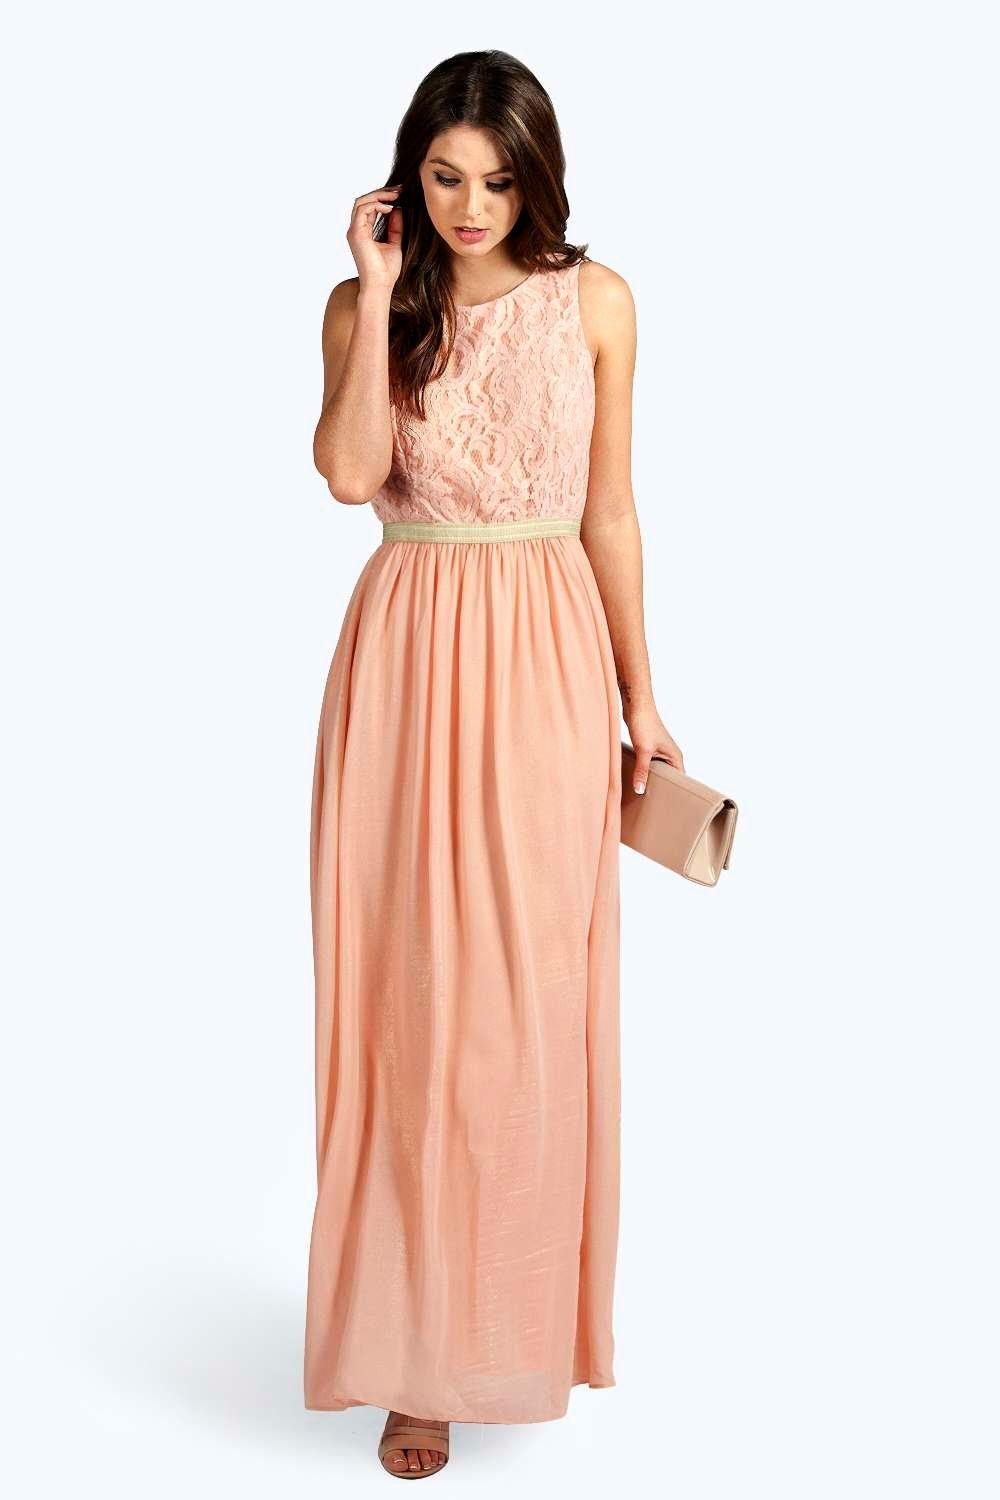 Boutique Zaynah Metallic Lace Detail Chiffon Maxi Dress | Boohoo